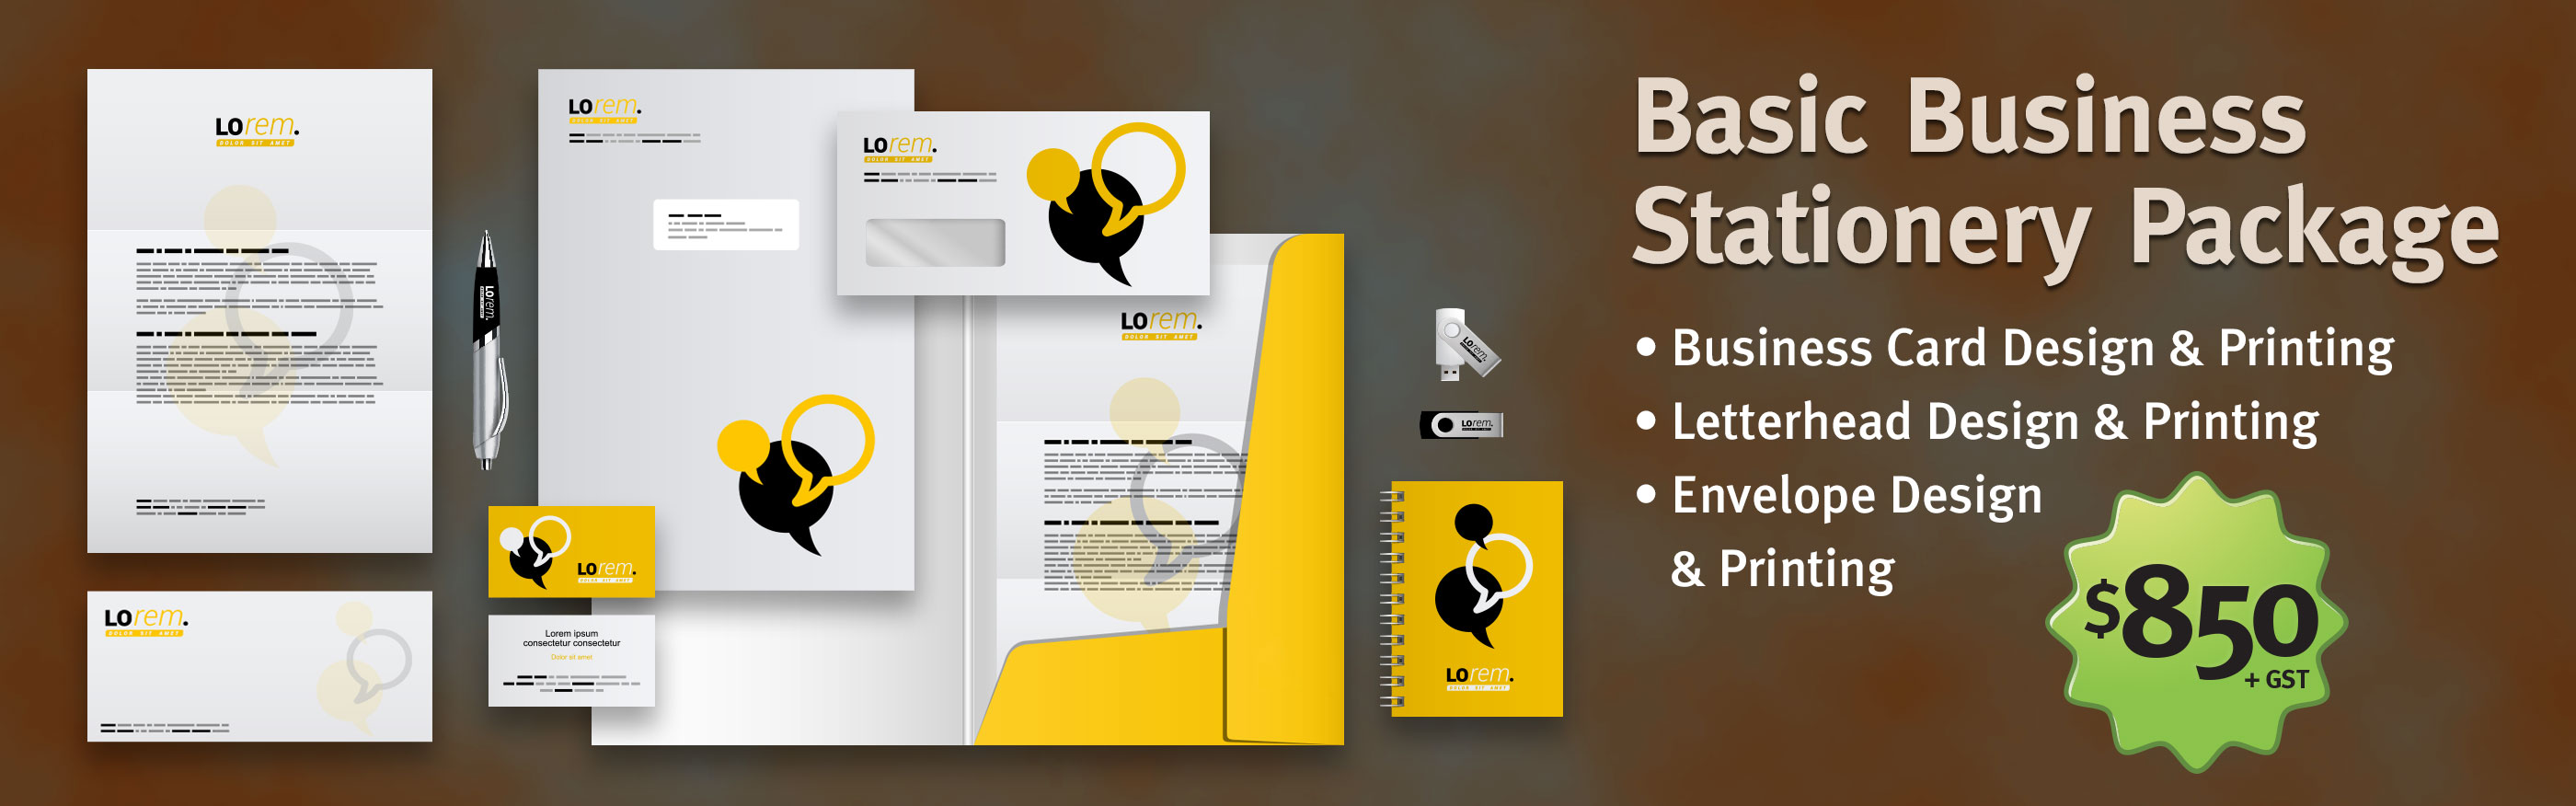 Business stationery design melbourne lime virtual studio basic business stationery design printing package reheart Image collections